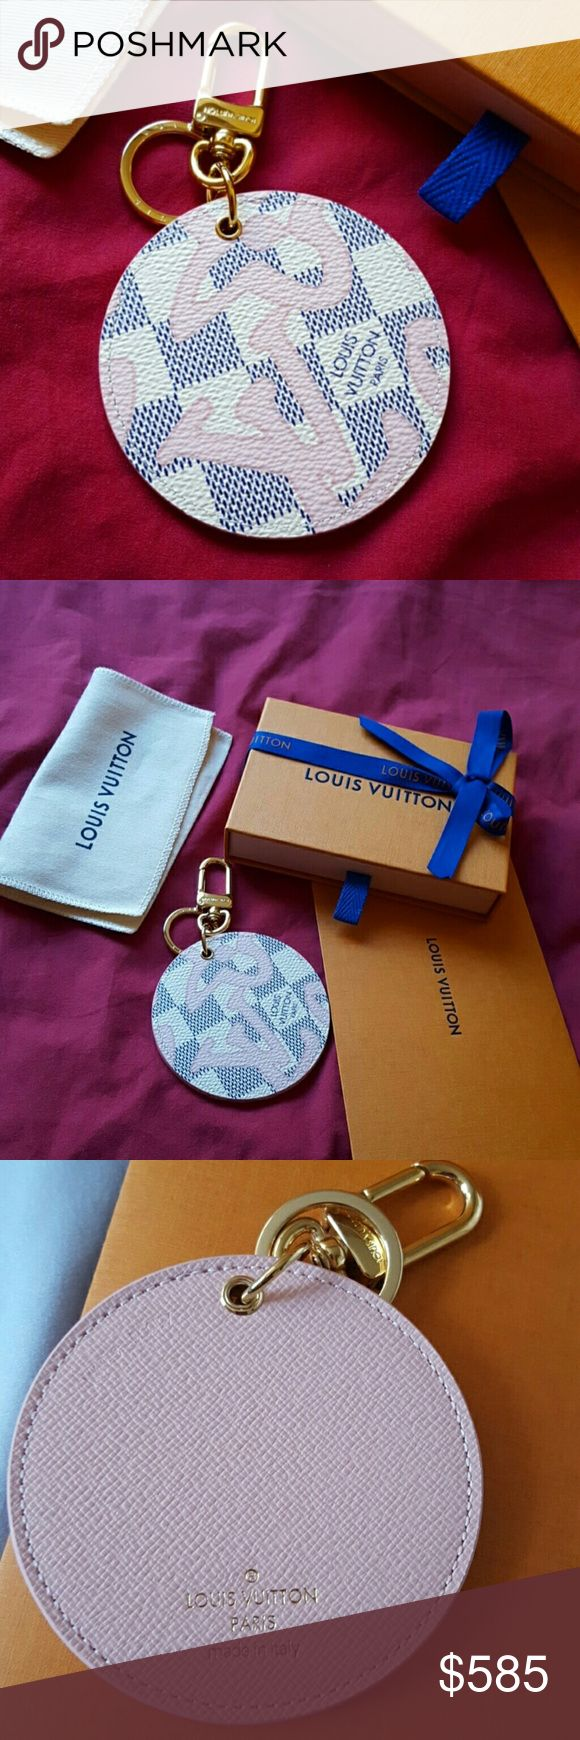 New authentic Louis Vuitton Tahitienne bag charm Brand new authentic Louis Vuitton Tahitienne limited edition bag charm/ key ring. Comes with everything,  dust bag, box, gift receipt.  Made in Italy. Datecode is very hard to read, see last picture,  right above my thumb.  I think it says BC0197. See last picture. On the left side of the datecode is the model number which says M61943.  This is extremely cute!  I'll be video recordingand taking pictures during packing & shipping at post…